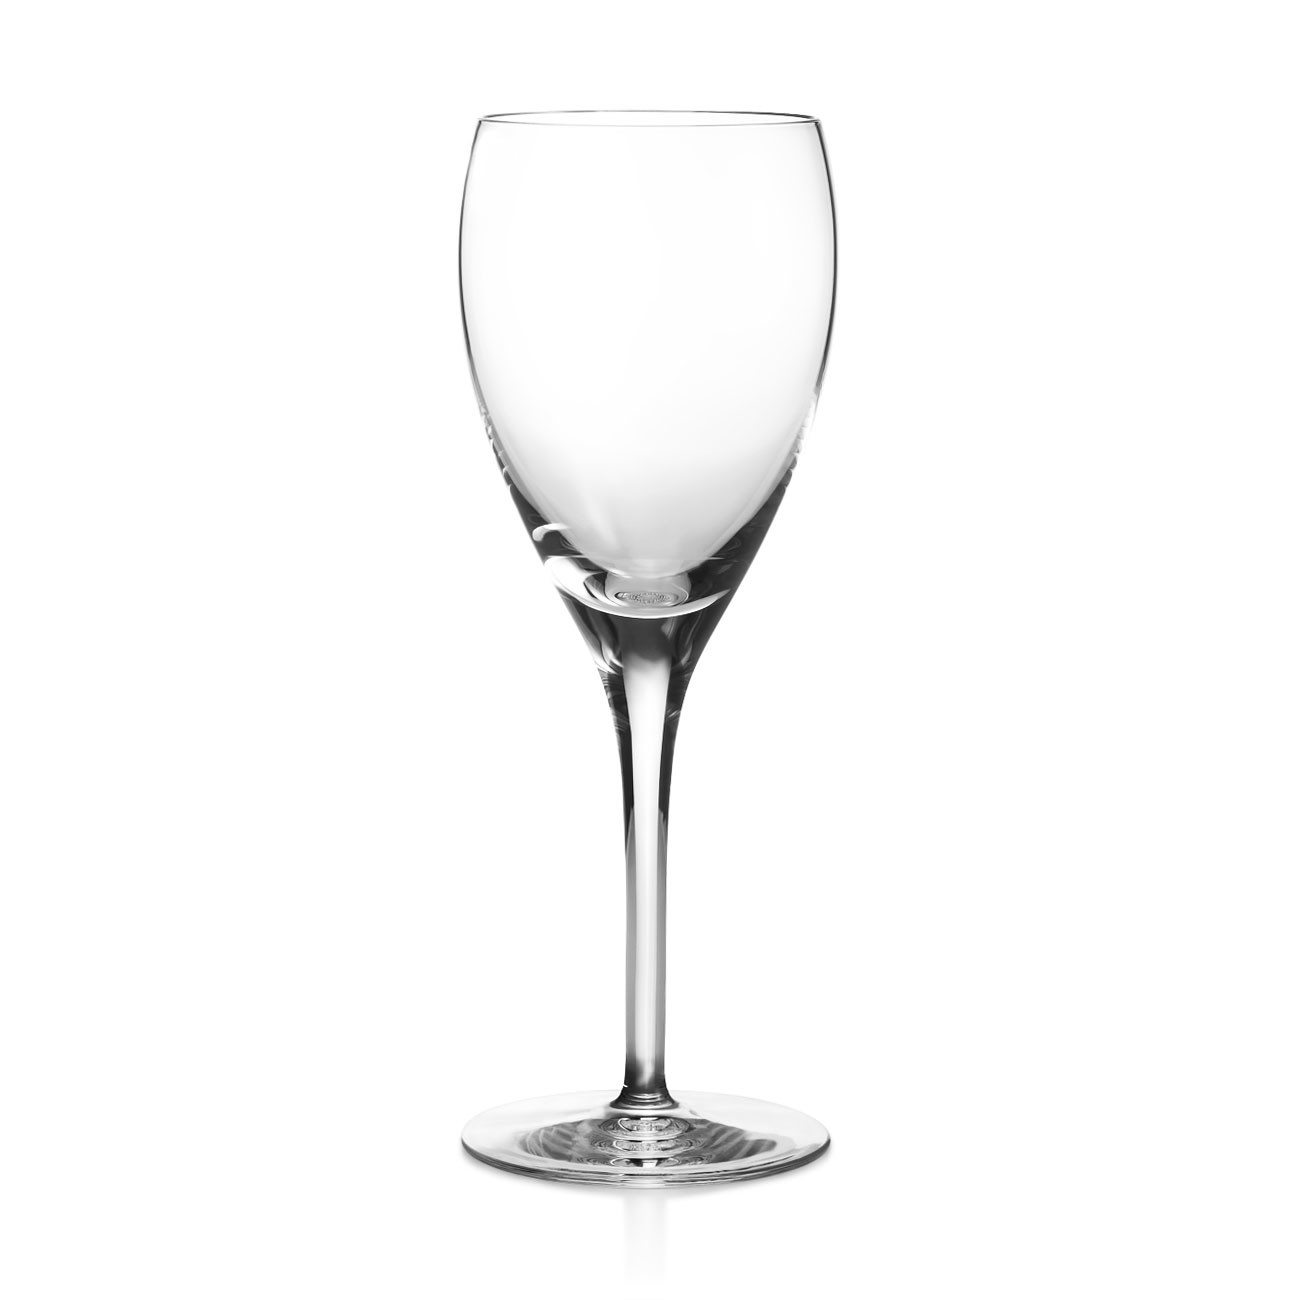 Christofle Albi Crystal Red Wine Glass